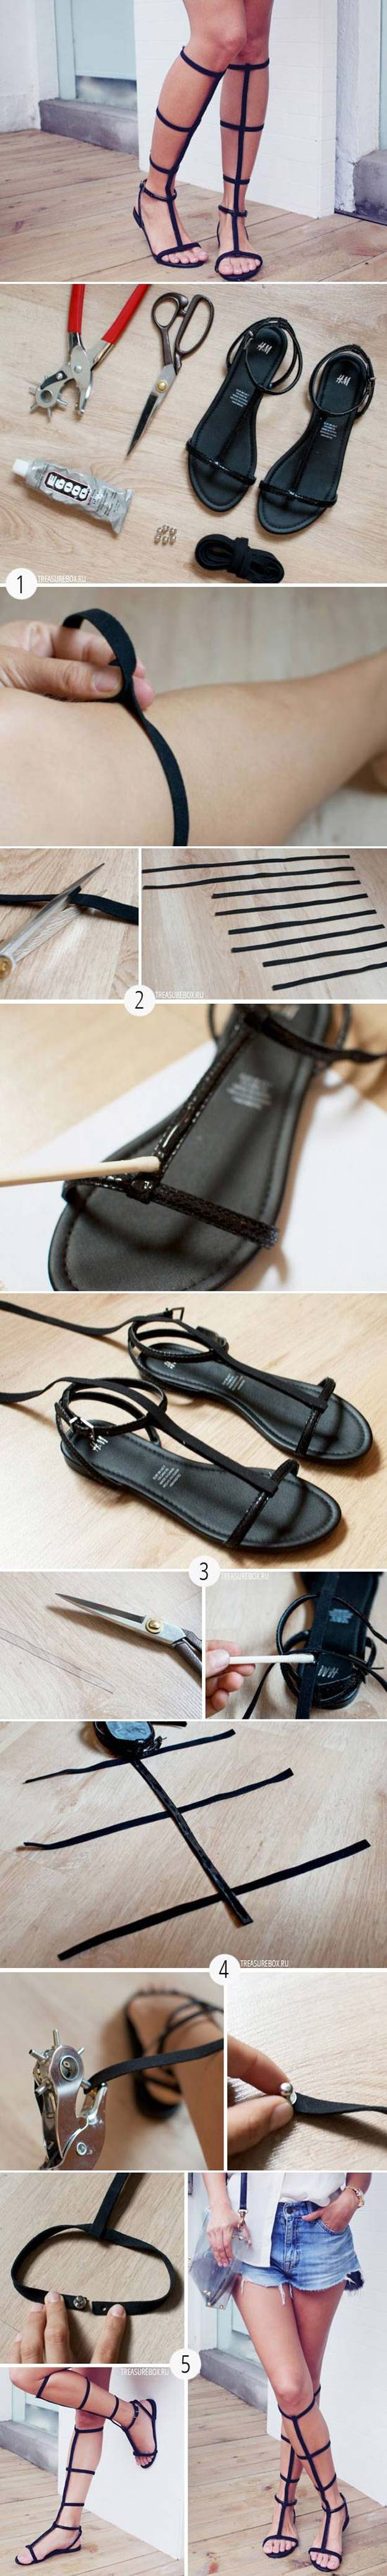 DIY Sandals and Flip Flops - DIY Nice Old Sandal Transformation - Creative, Cool and Easy Ways to Make or Update Your Shoes - Decorate Flip Flops with Cheap Dollar Store Crafts and Ideas - Beaded, Leather, Strappy and Painted Sandal Projects - Fun DIY Projects and Crafts for Teens and Teenagers